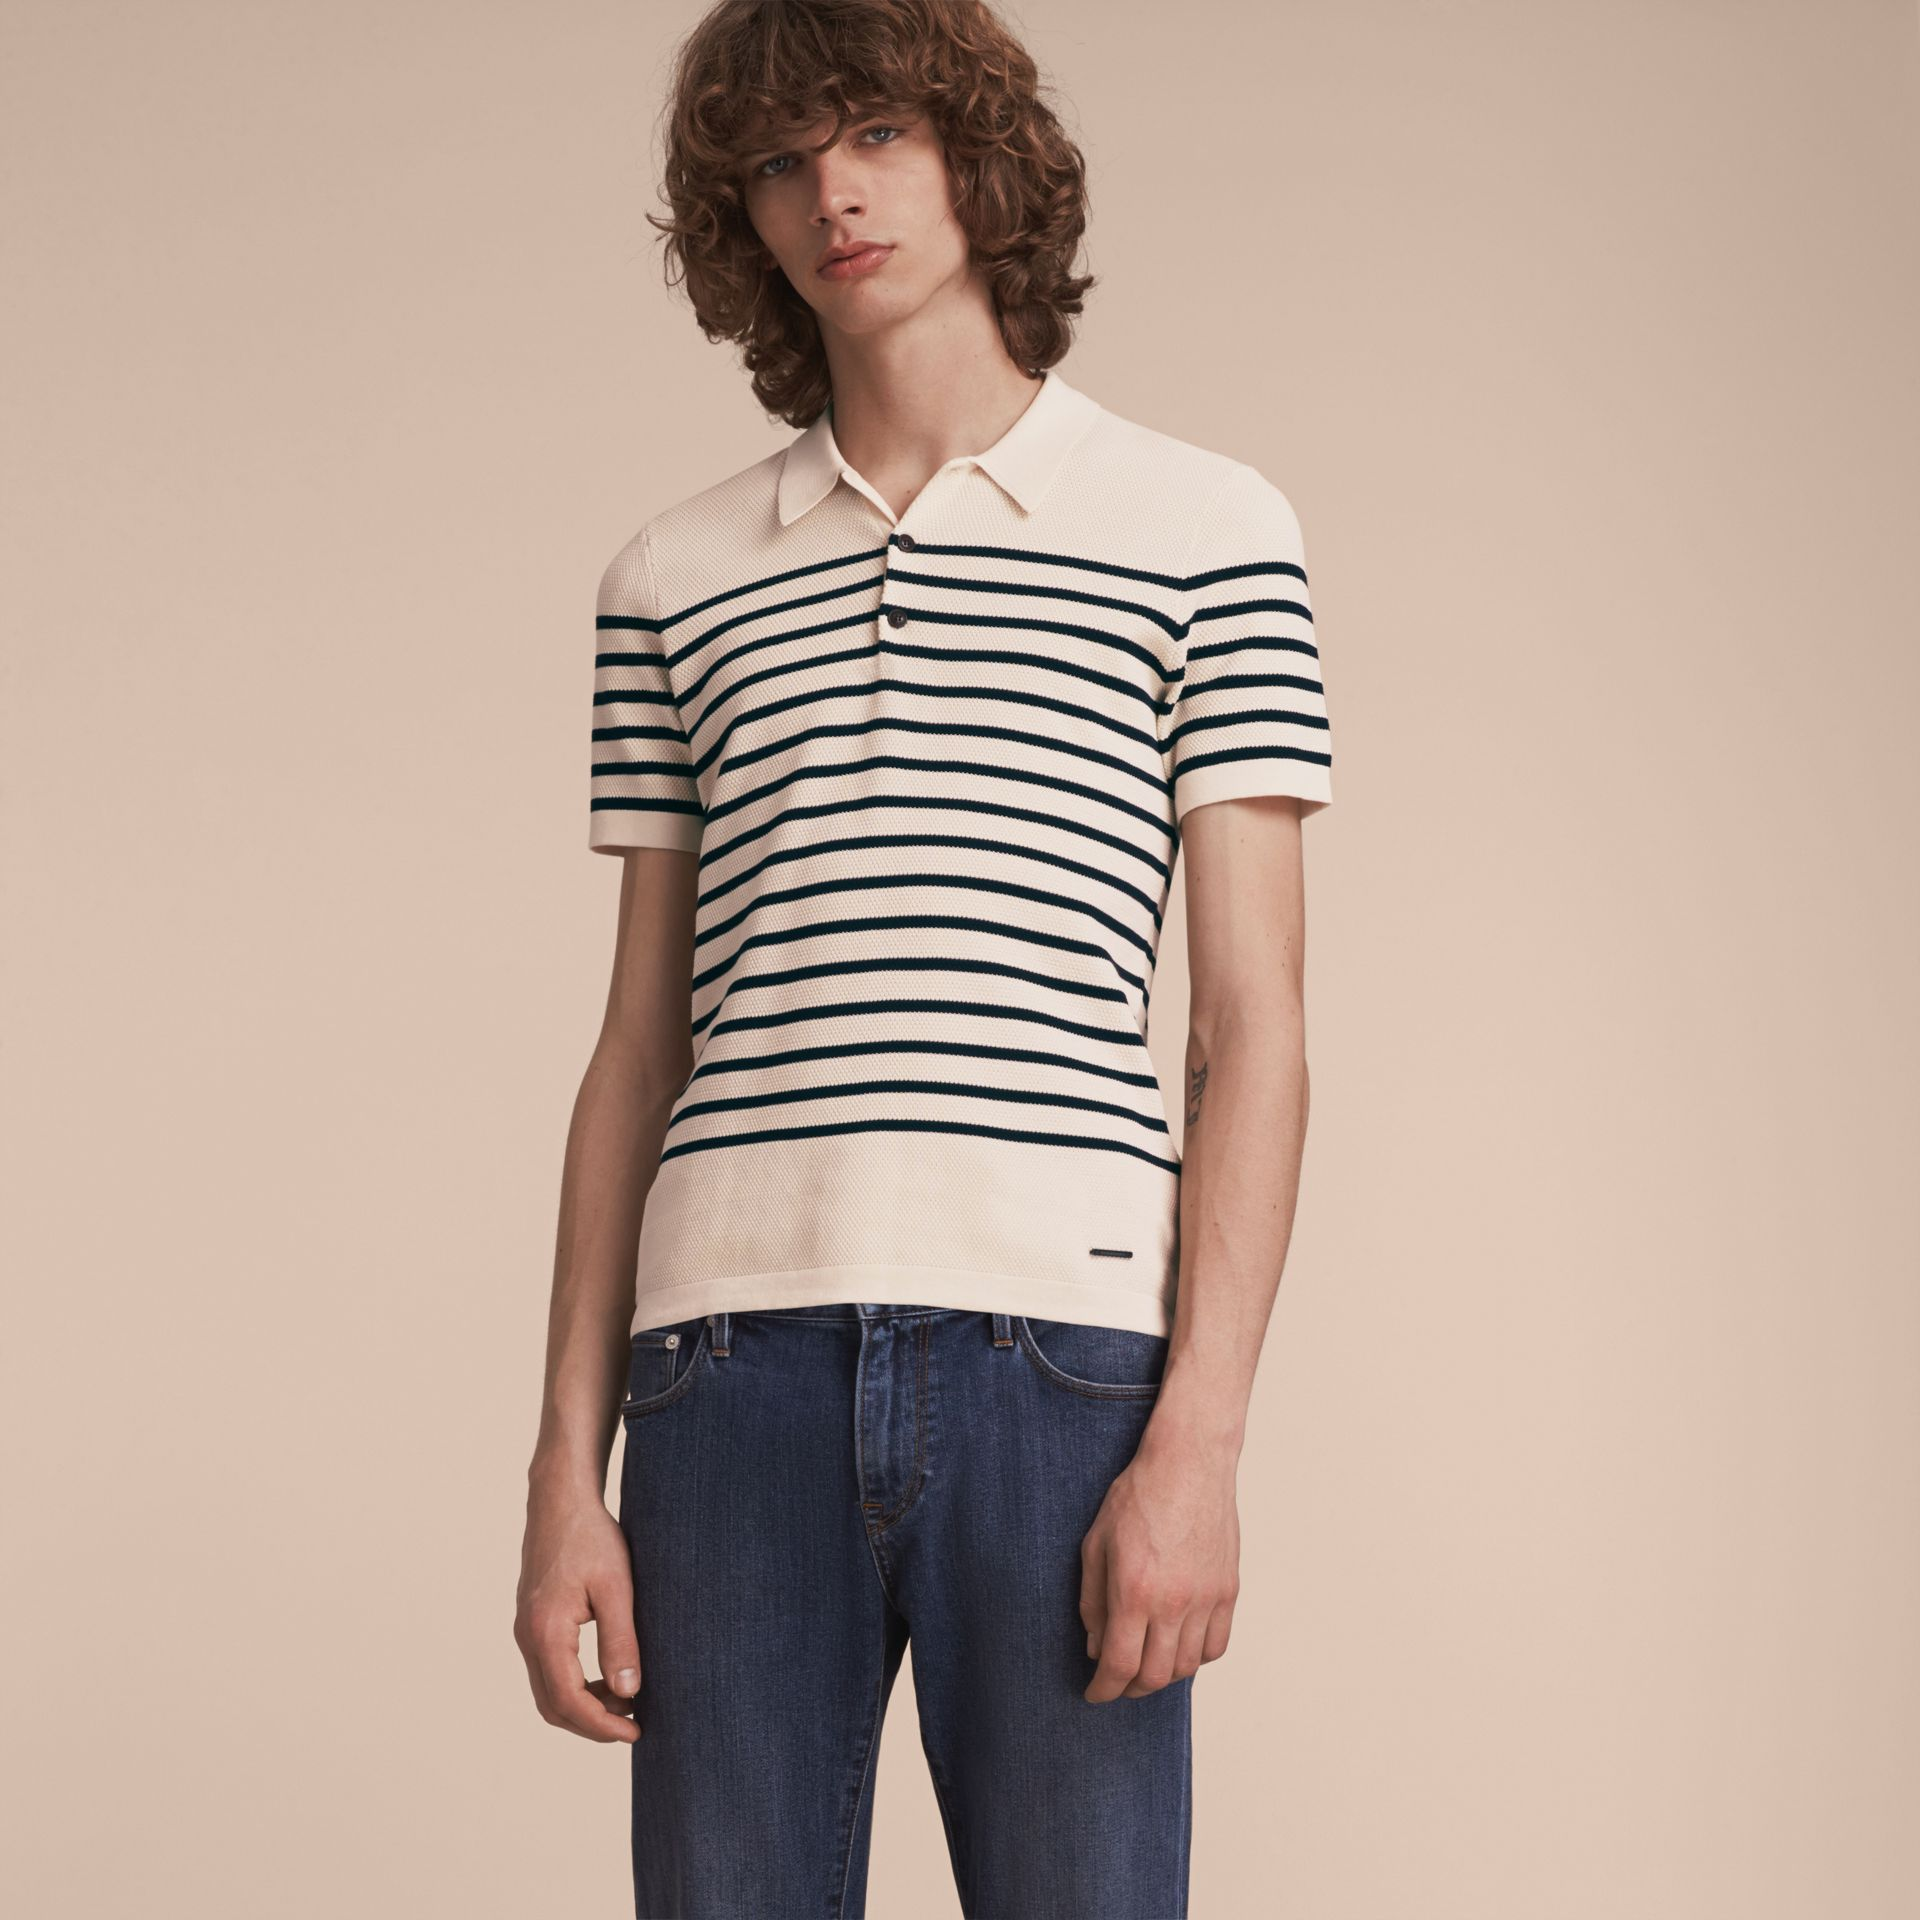 Striped Knitted Cotton Polo Shirt in White - Men | Burberry Canada - gallery image 6